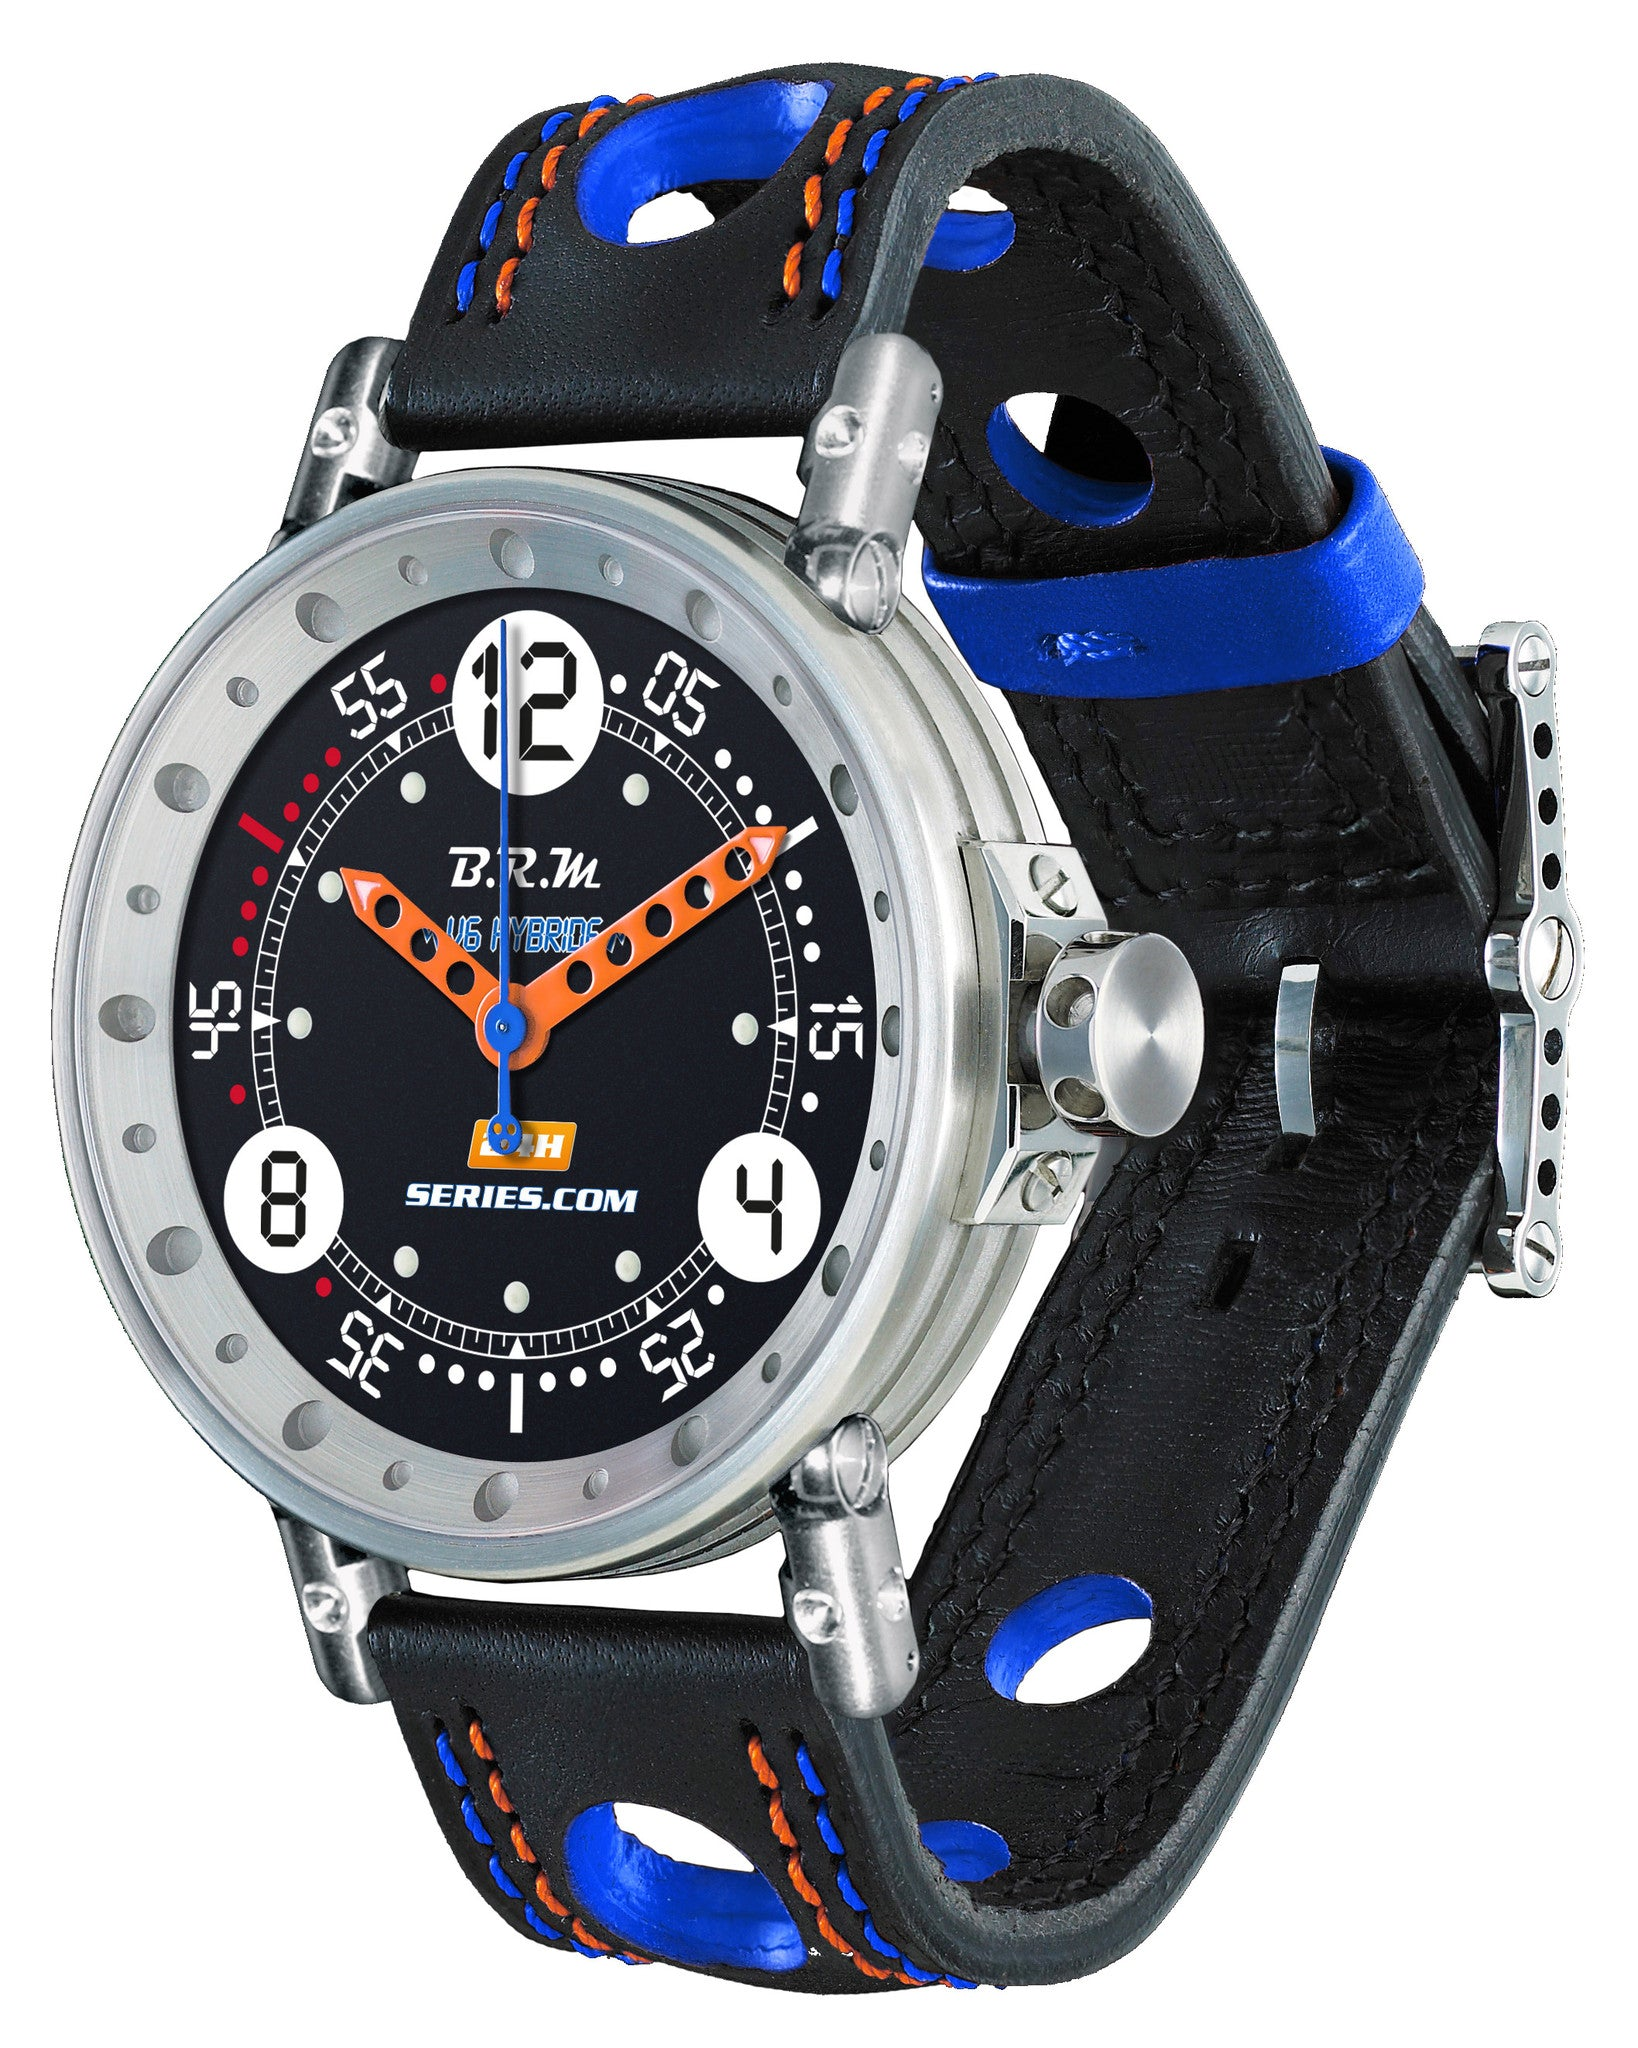 B.R.M. Watch V6-44 HB 24H Series Limited Edition